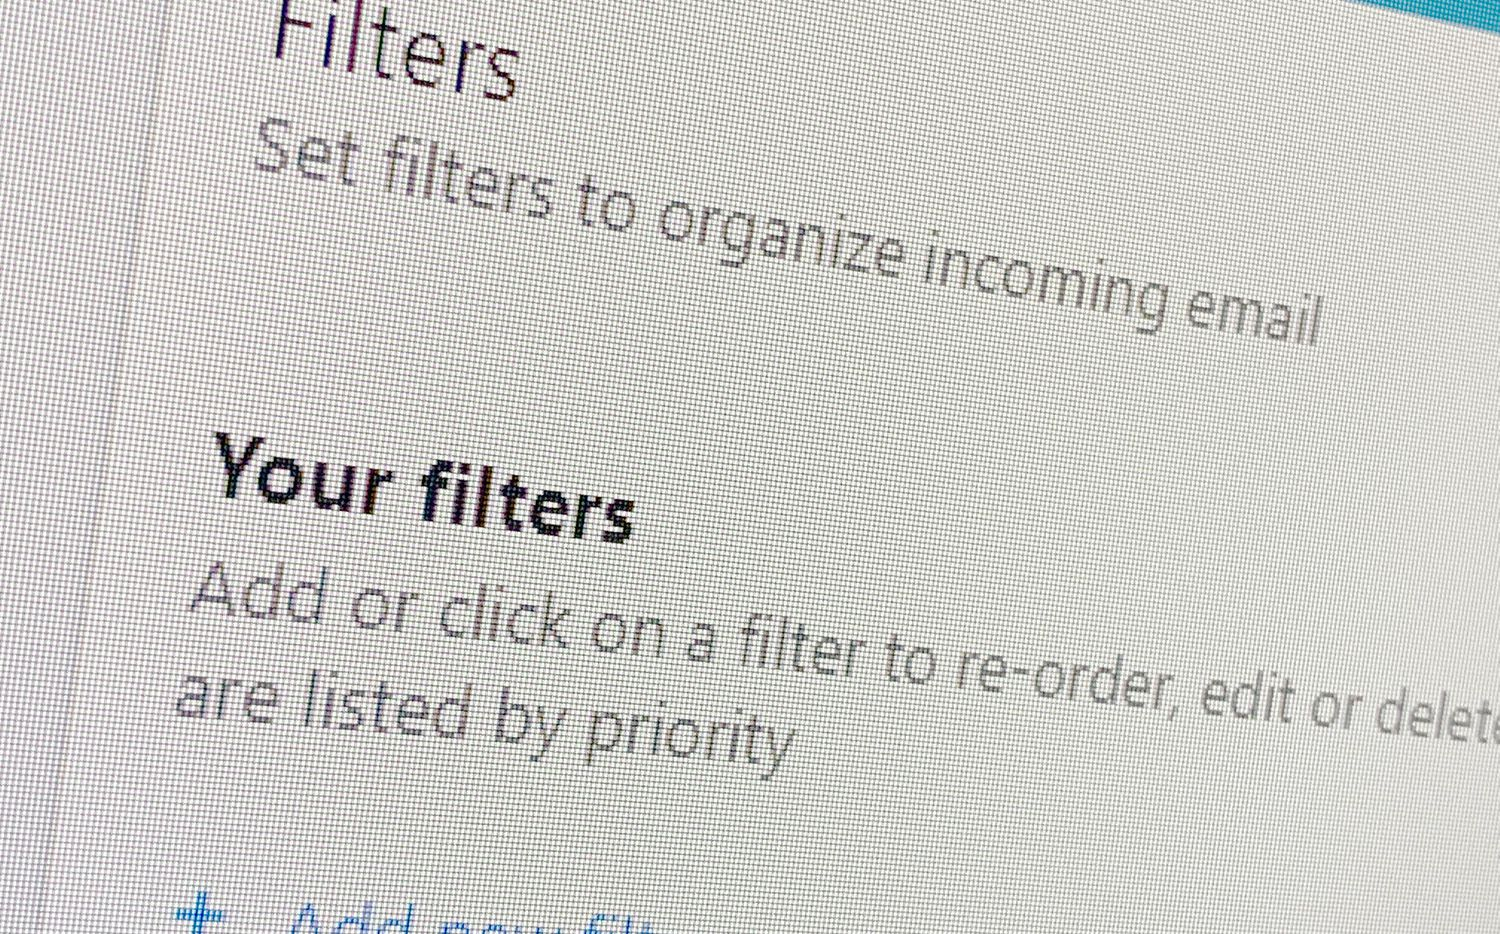 The filter settings in Yahoo Mail.